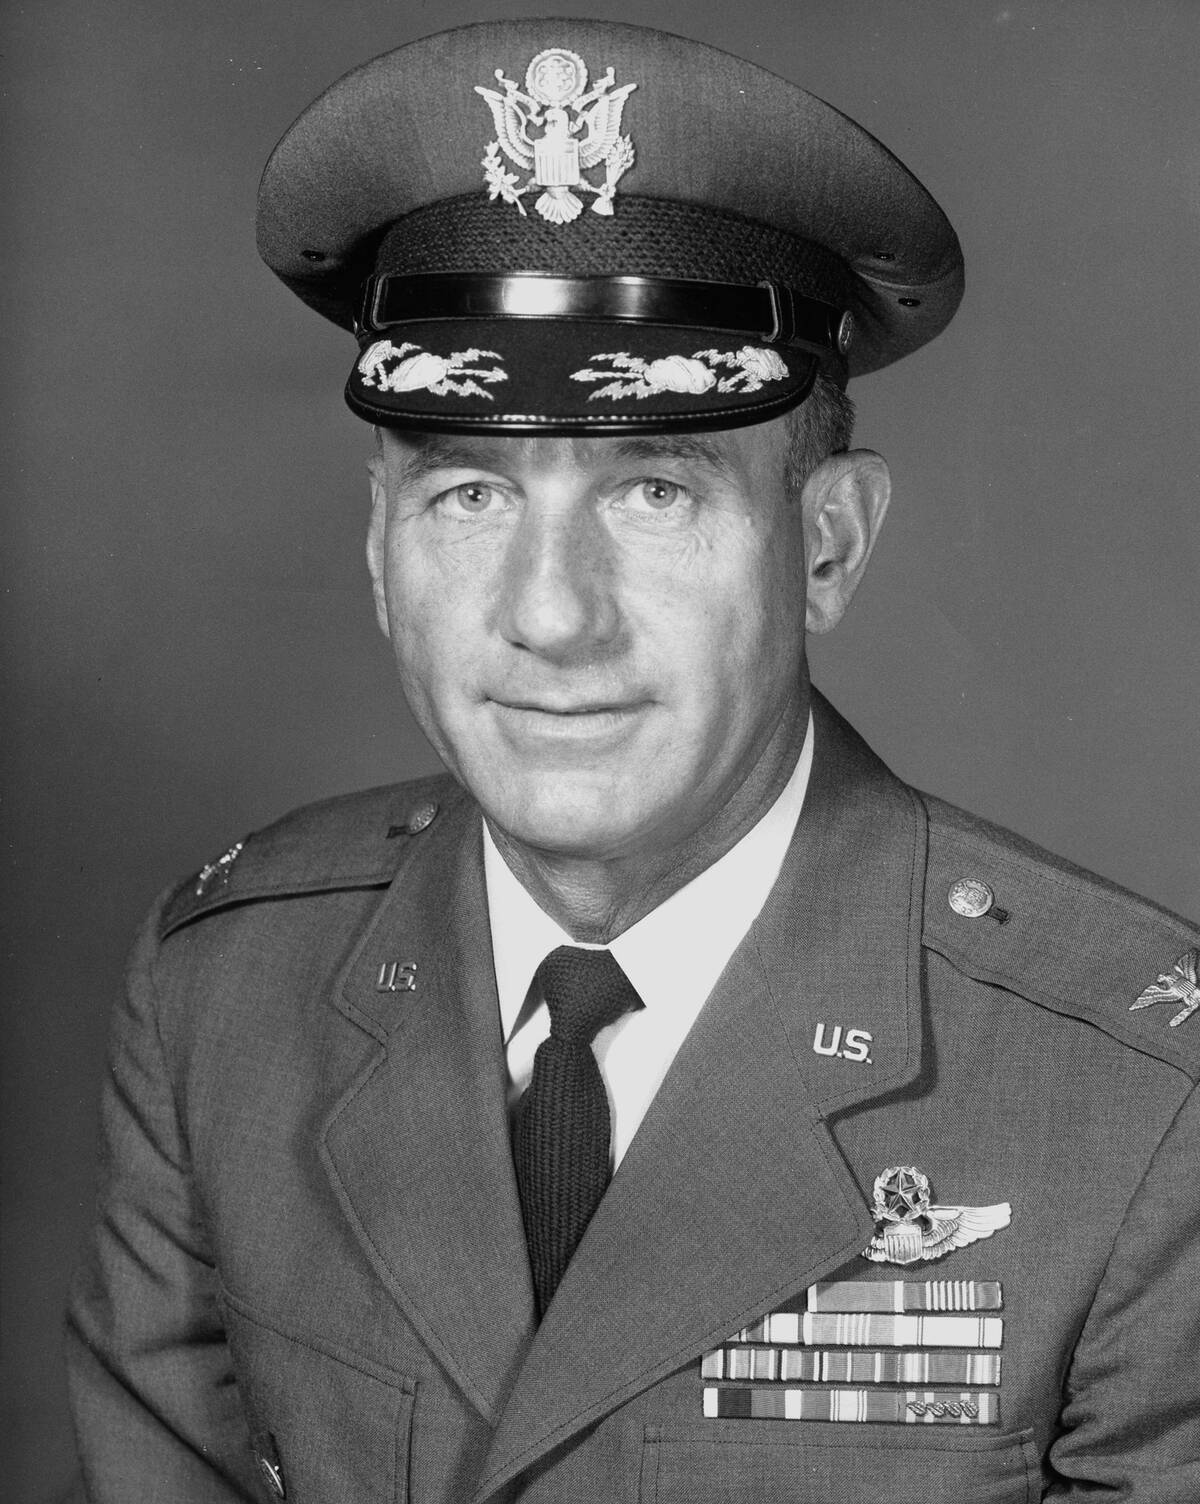 The Santa Colonel US Air Force Colonel Harry Shoup